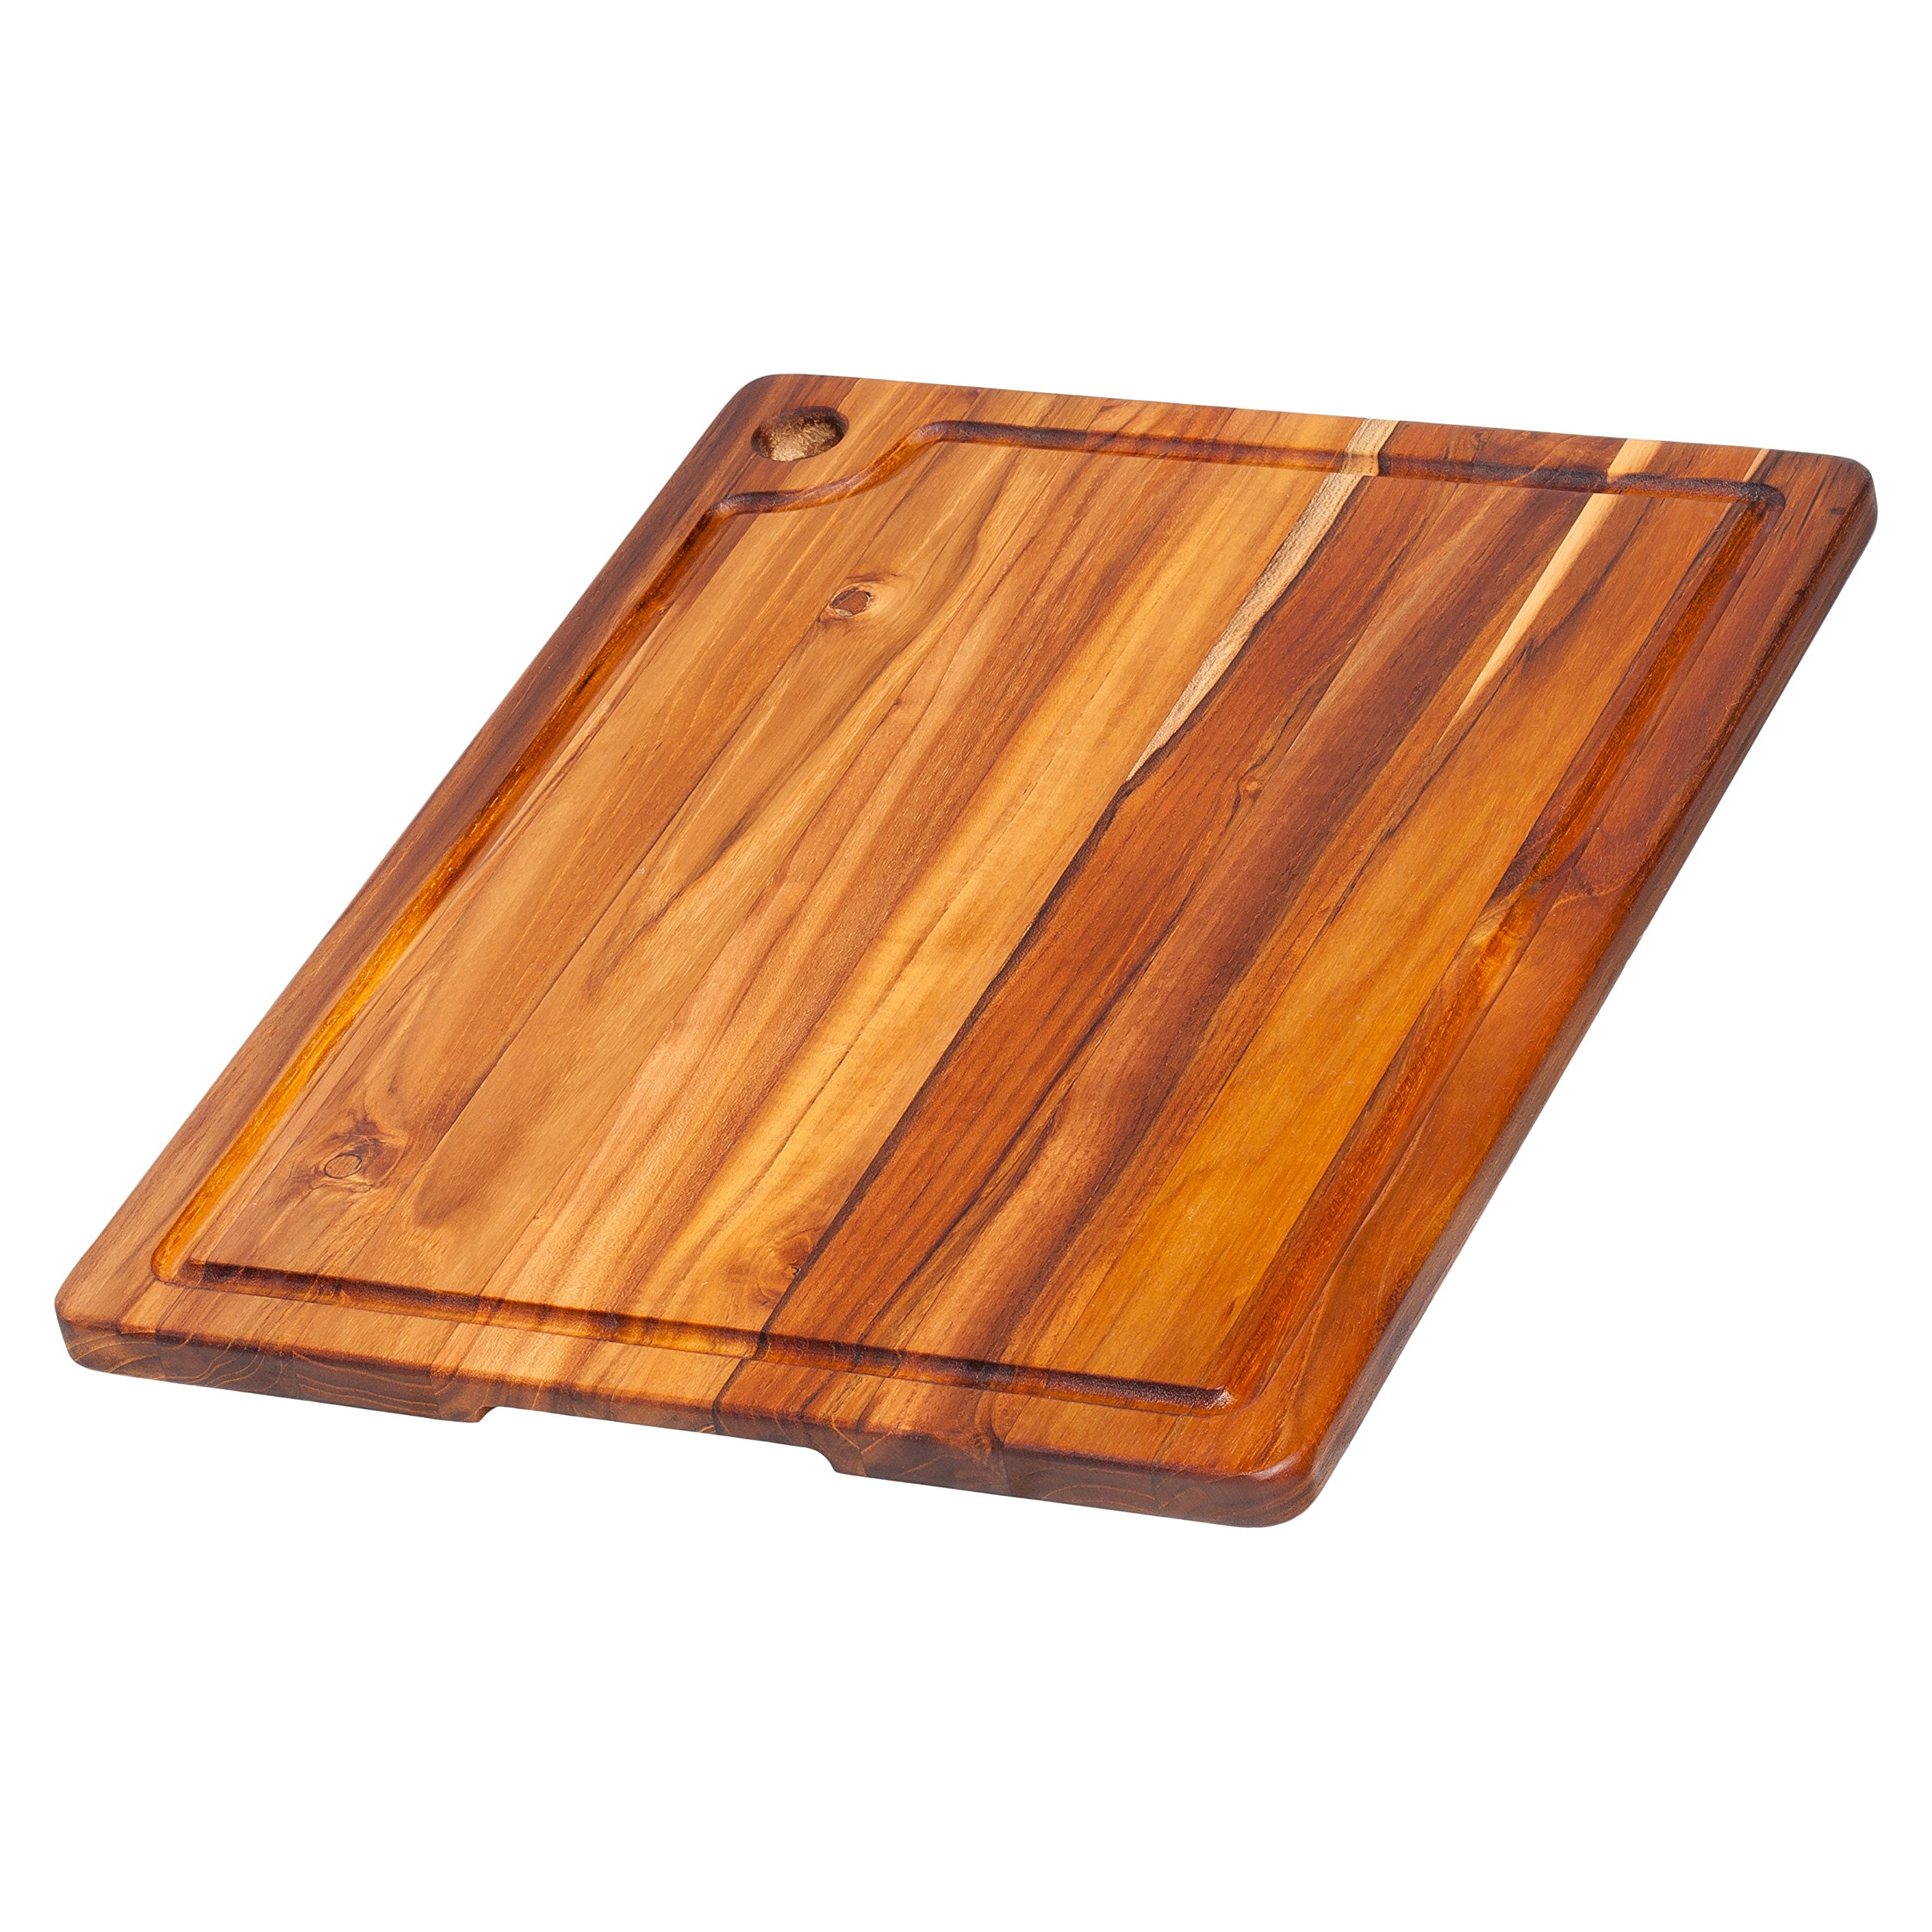 Teak Cutting Board - Rectangle Edge Grain Board With Corner Hole And Juice Canal (18 x 14 x .75 in.) - By Teakhaus